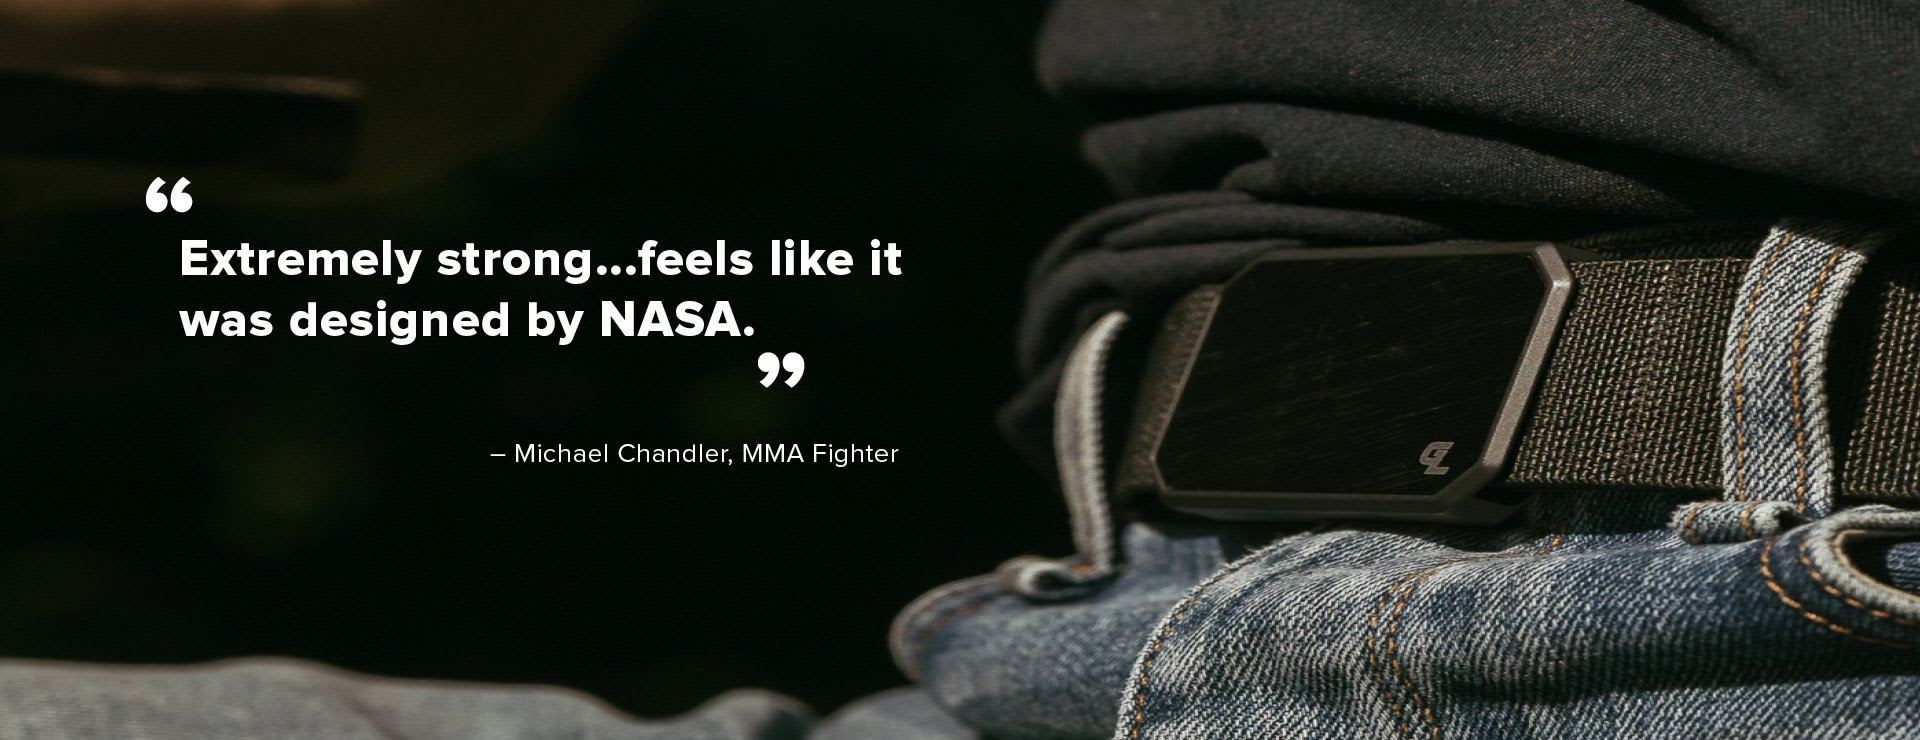 "Testimonial, ""Extremely strong...feels like it was designed by NASA."" - Michael Chandler, MMA Fighter"